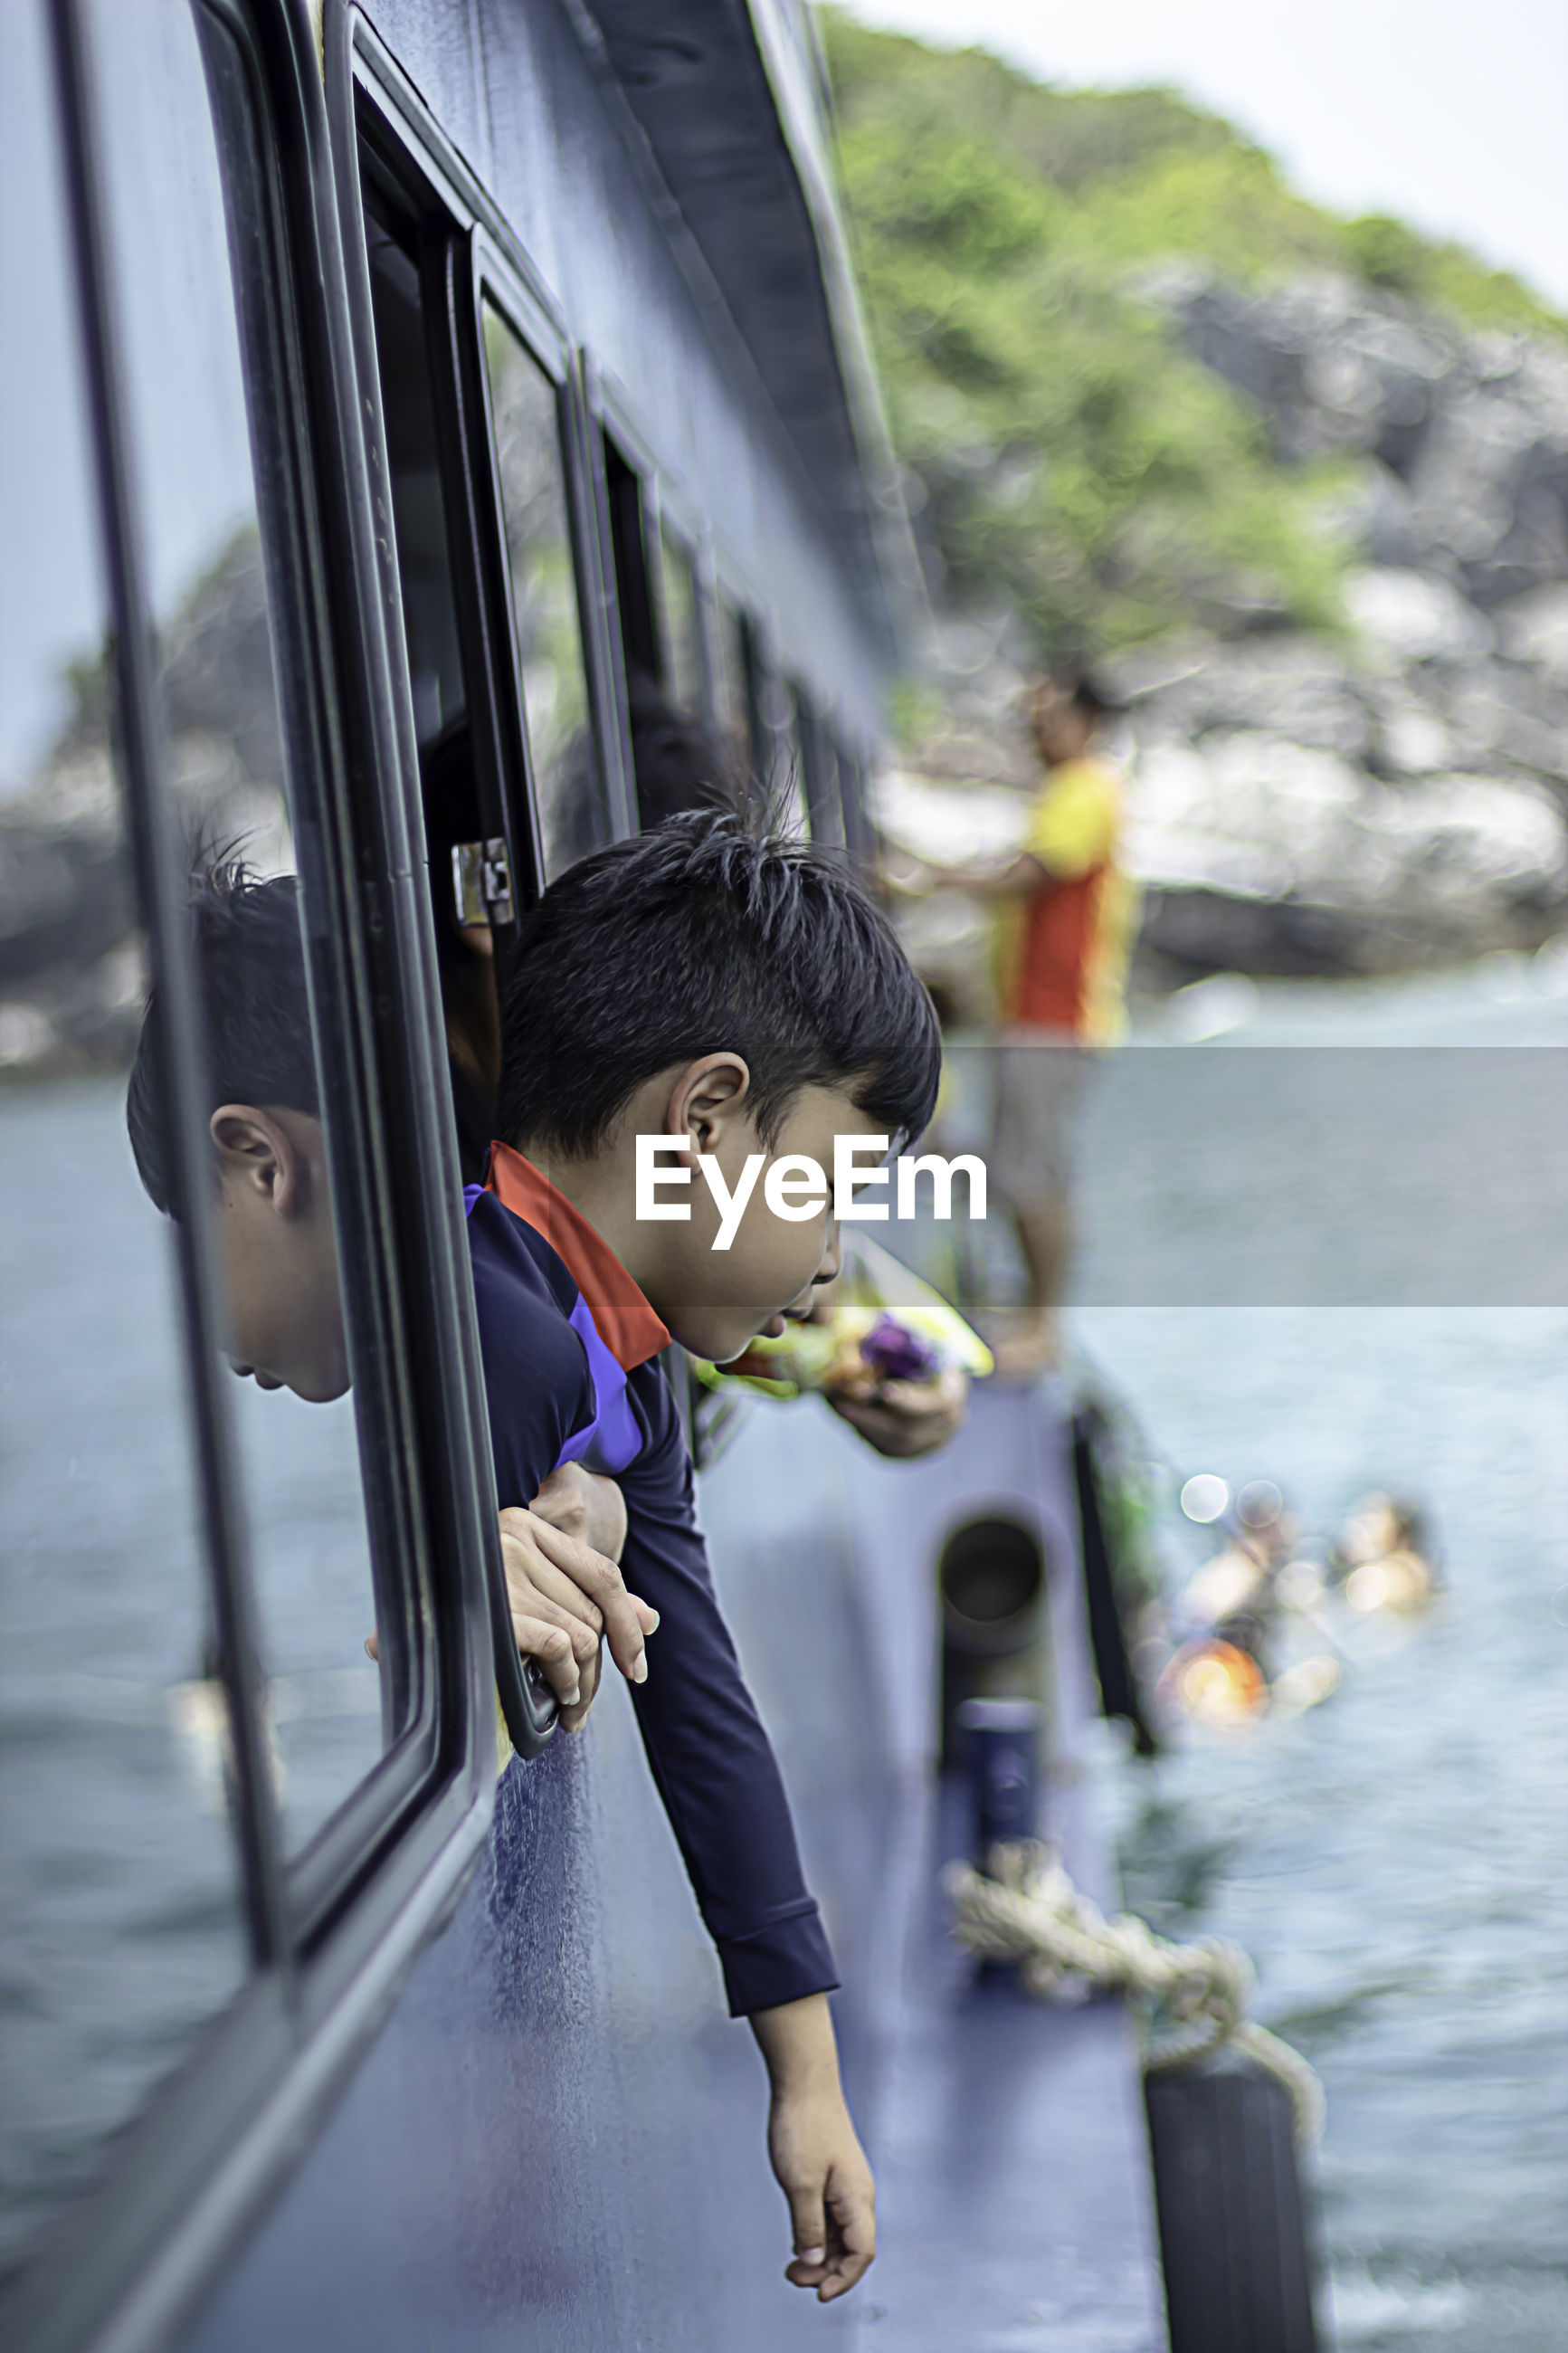 Boy looking away while peeking out from boat window in sea